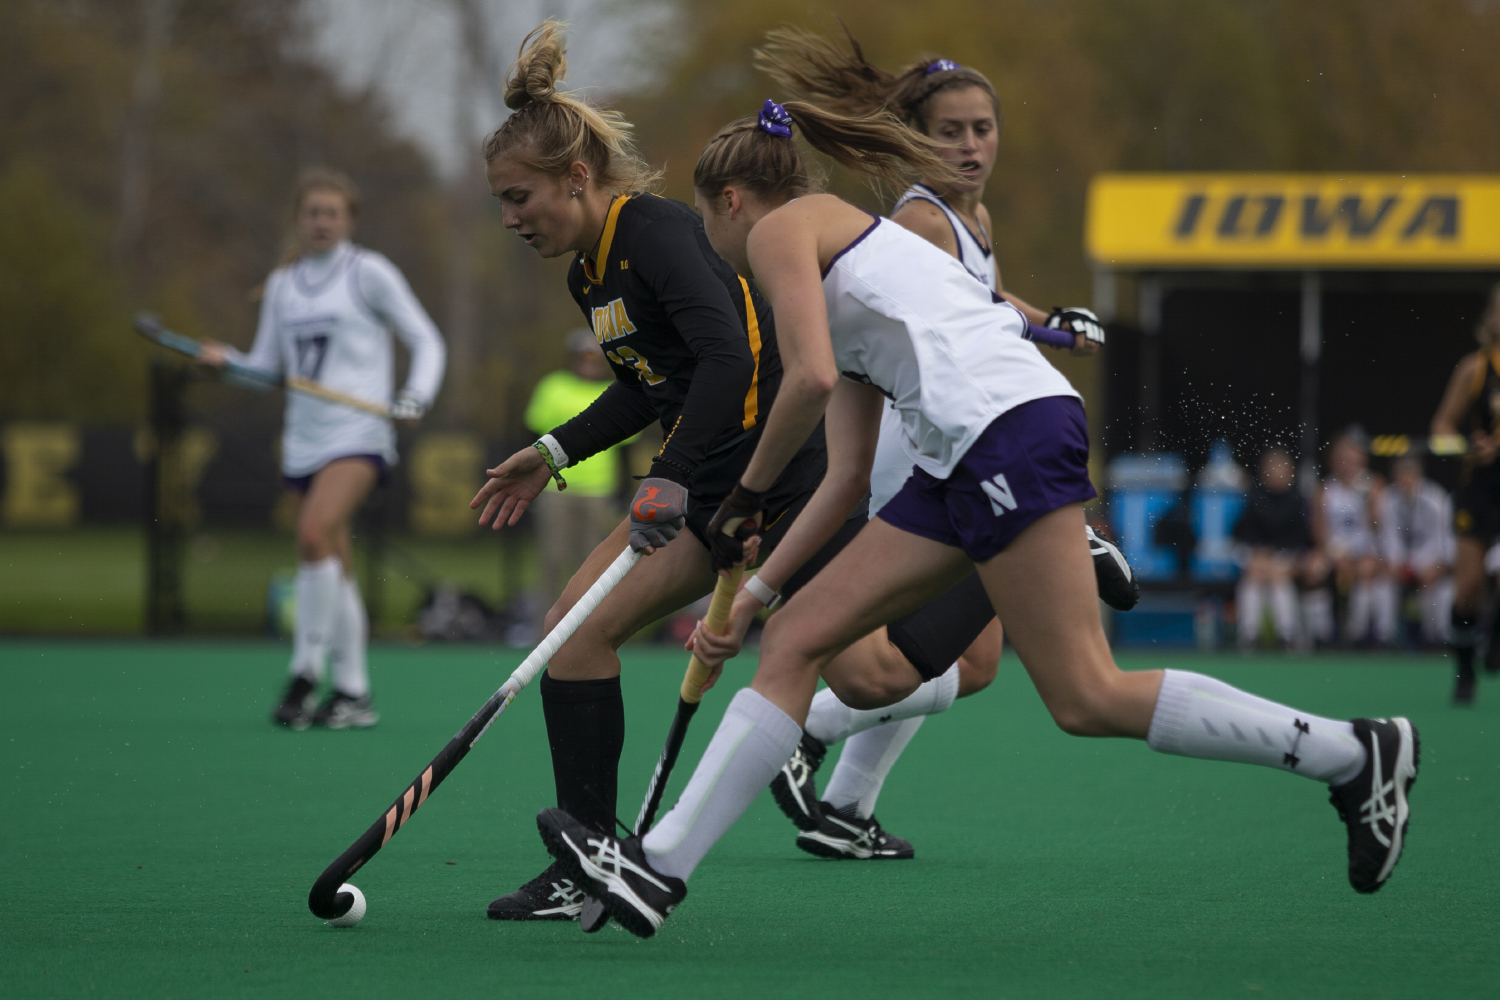 Iowa forward Leah Zellner keeps the ball away from a Northwestern player during a field hockey game between Iowa and Northwestern at Grant Field on Saturday Oct. 26, 2019. The Hawkeyes defeated the Wildcats 2-1.